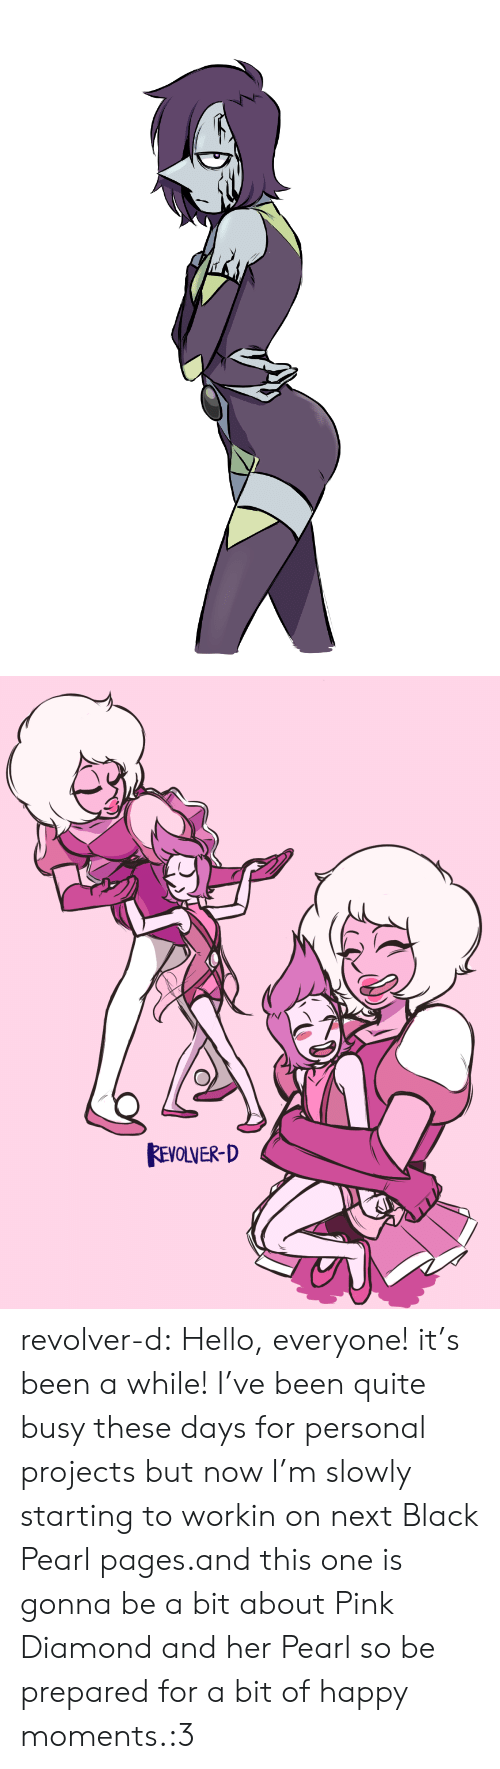 Hello, Tumblr, and Black: REVOLVER-D revolver-d:  Hello, everyone! it's been a while! I've been quite busy these days for personal projects but now I'm slowly starting to workin on next Black Pearl pages.and this one is gonna be a bit about Pink Diamond and her Pearl so be prepared for a bit of happy moments.:3